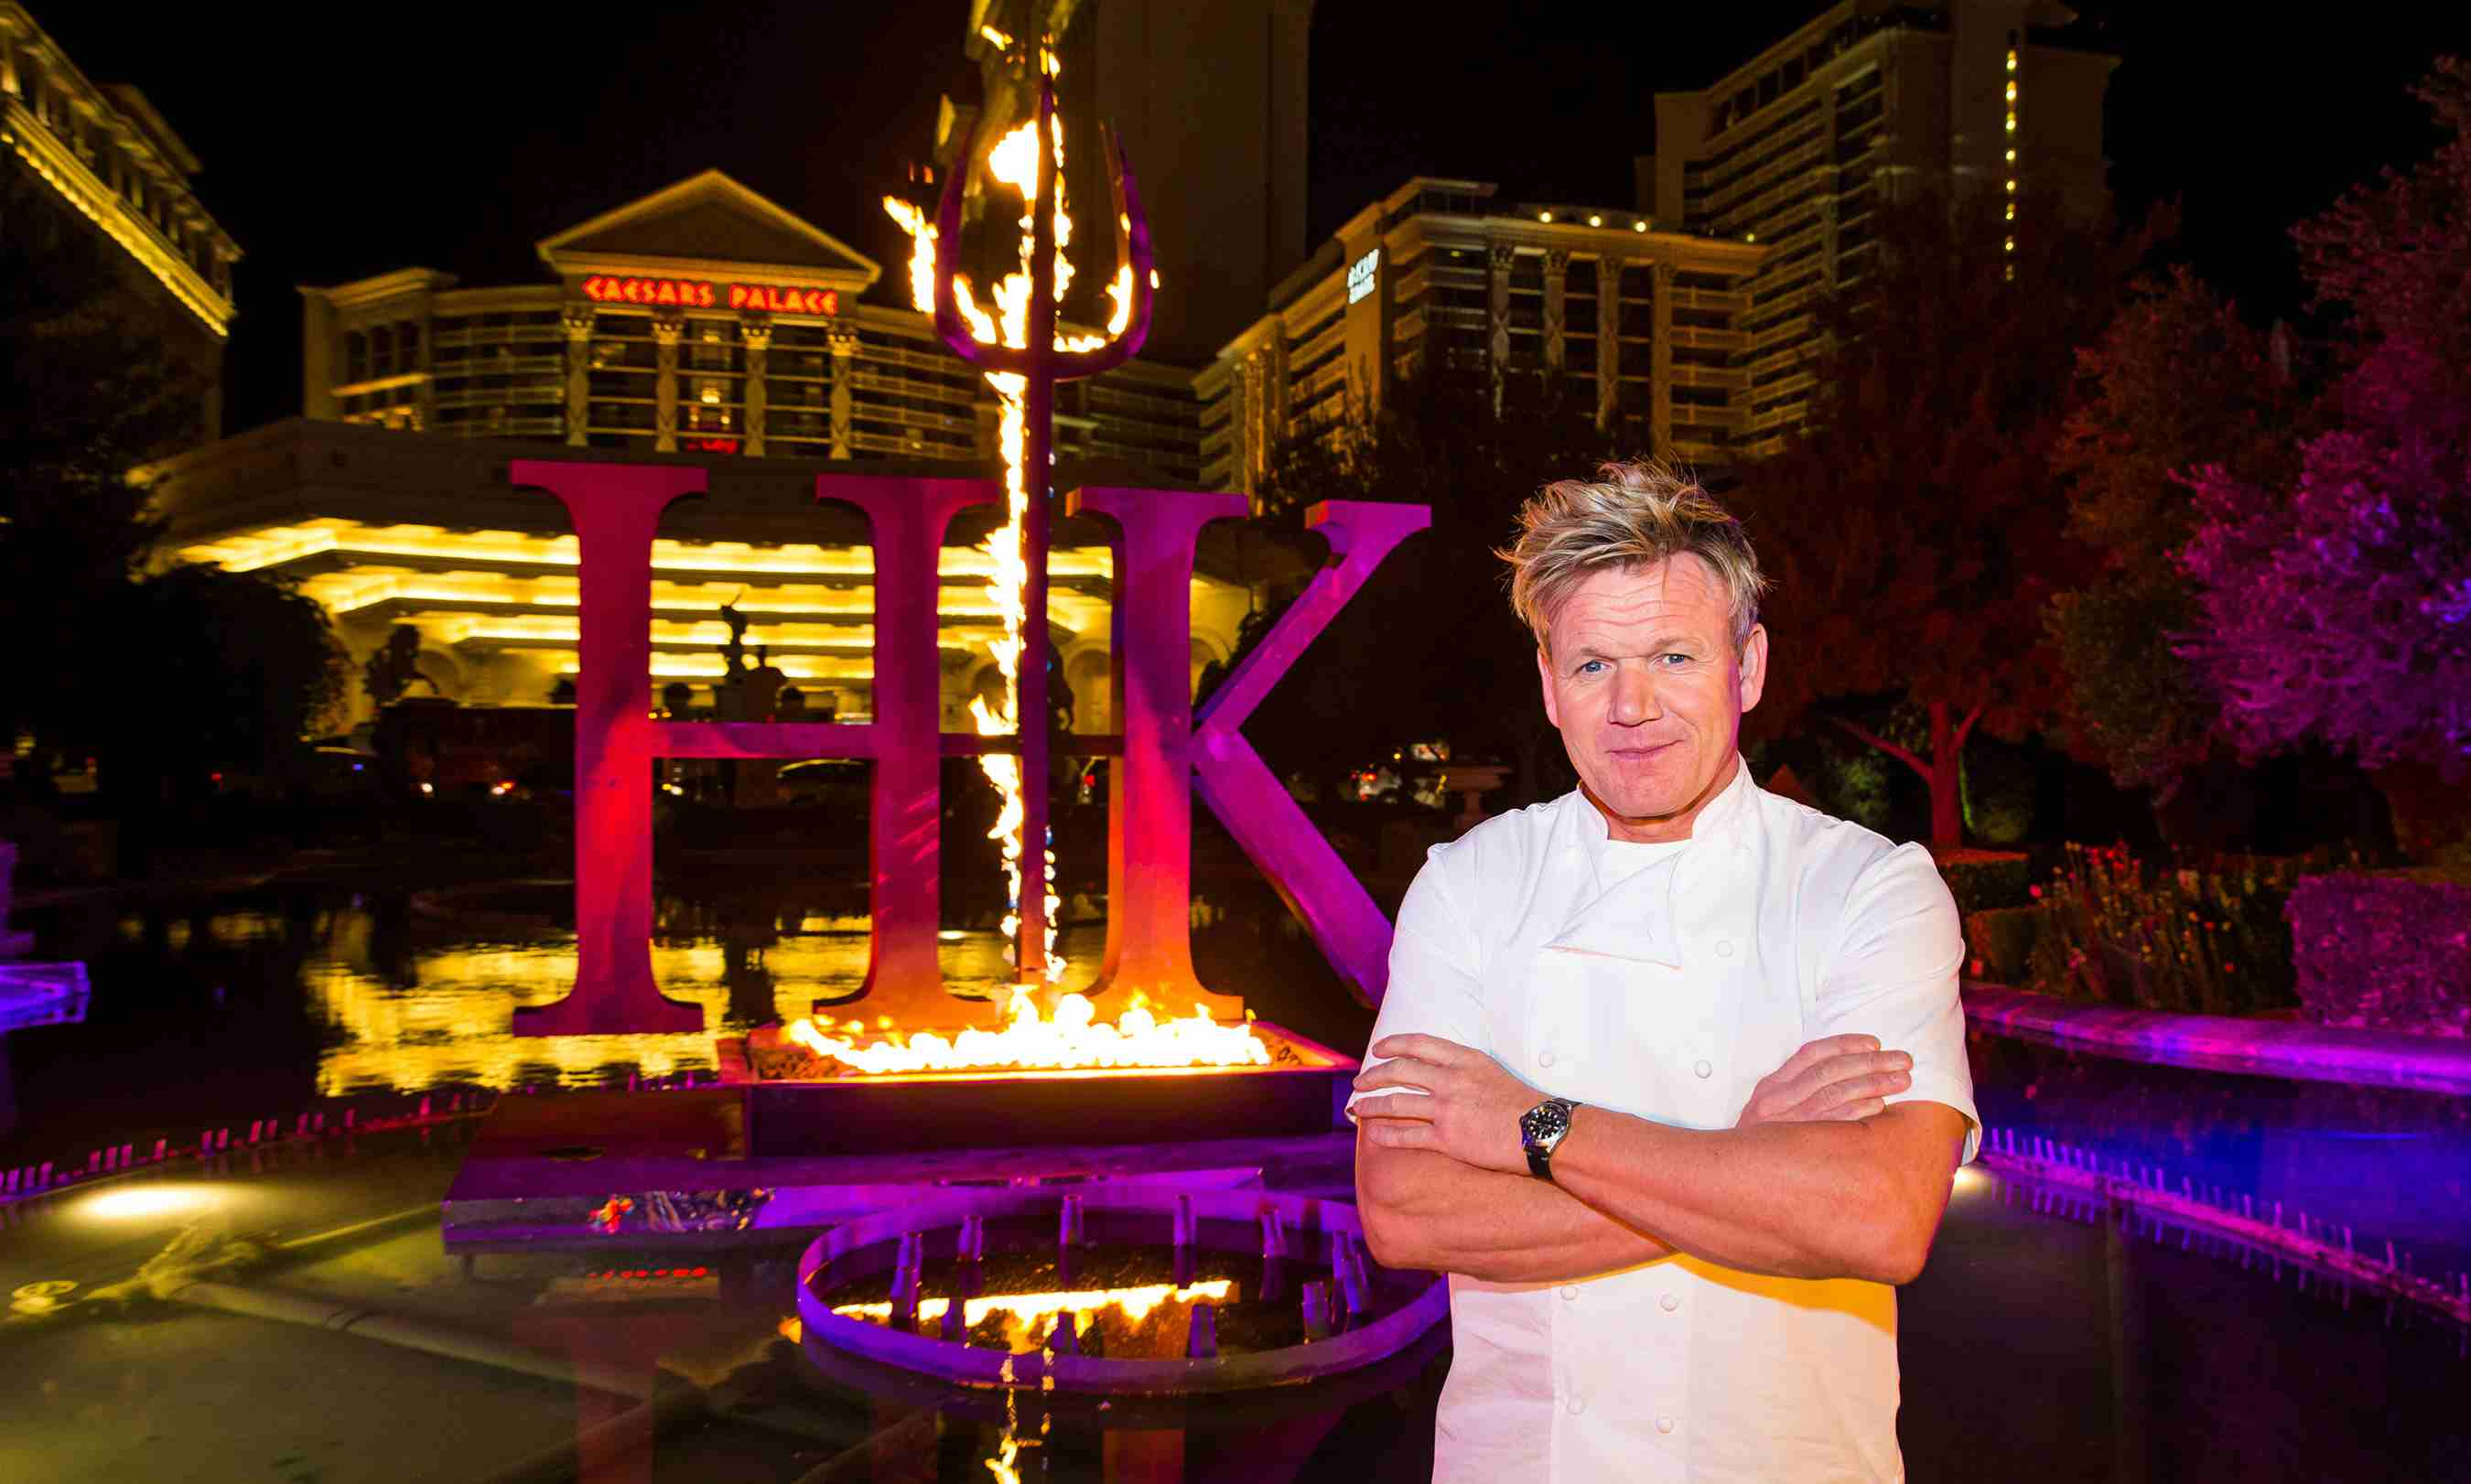 Gordon Ramsay Restaurants in Las Vegas